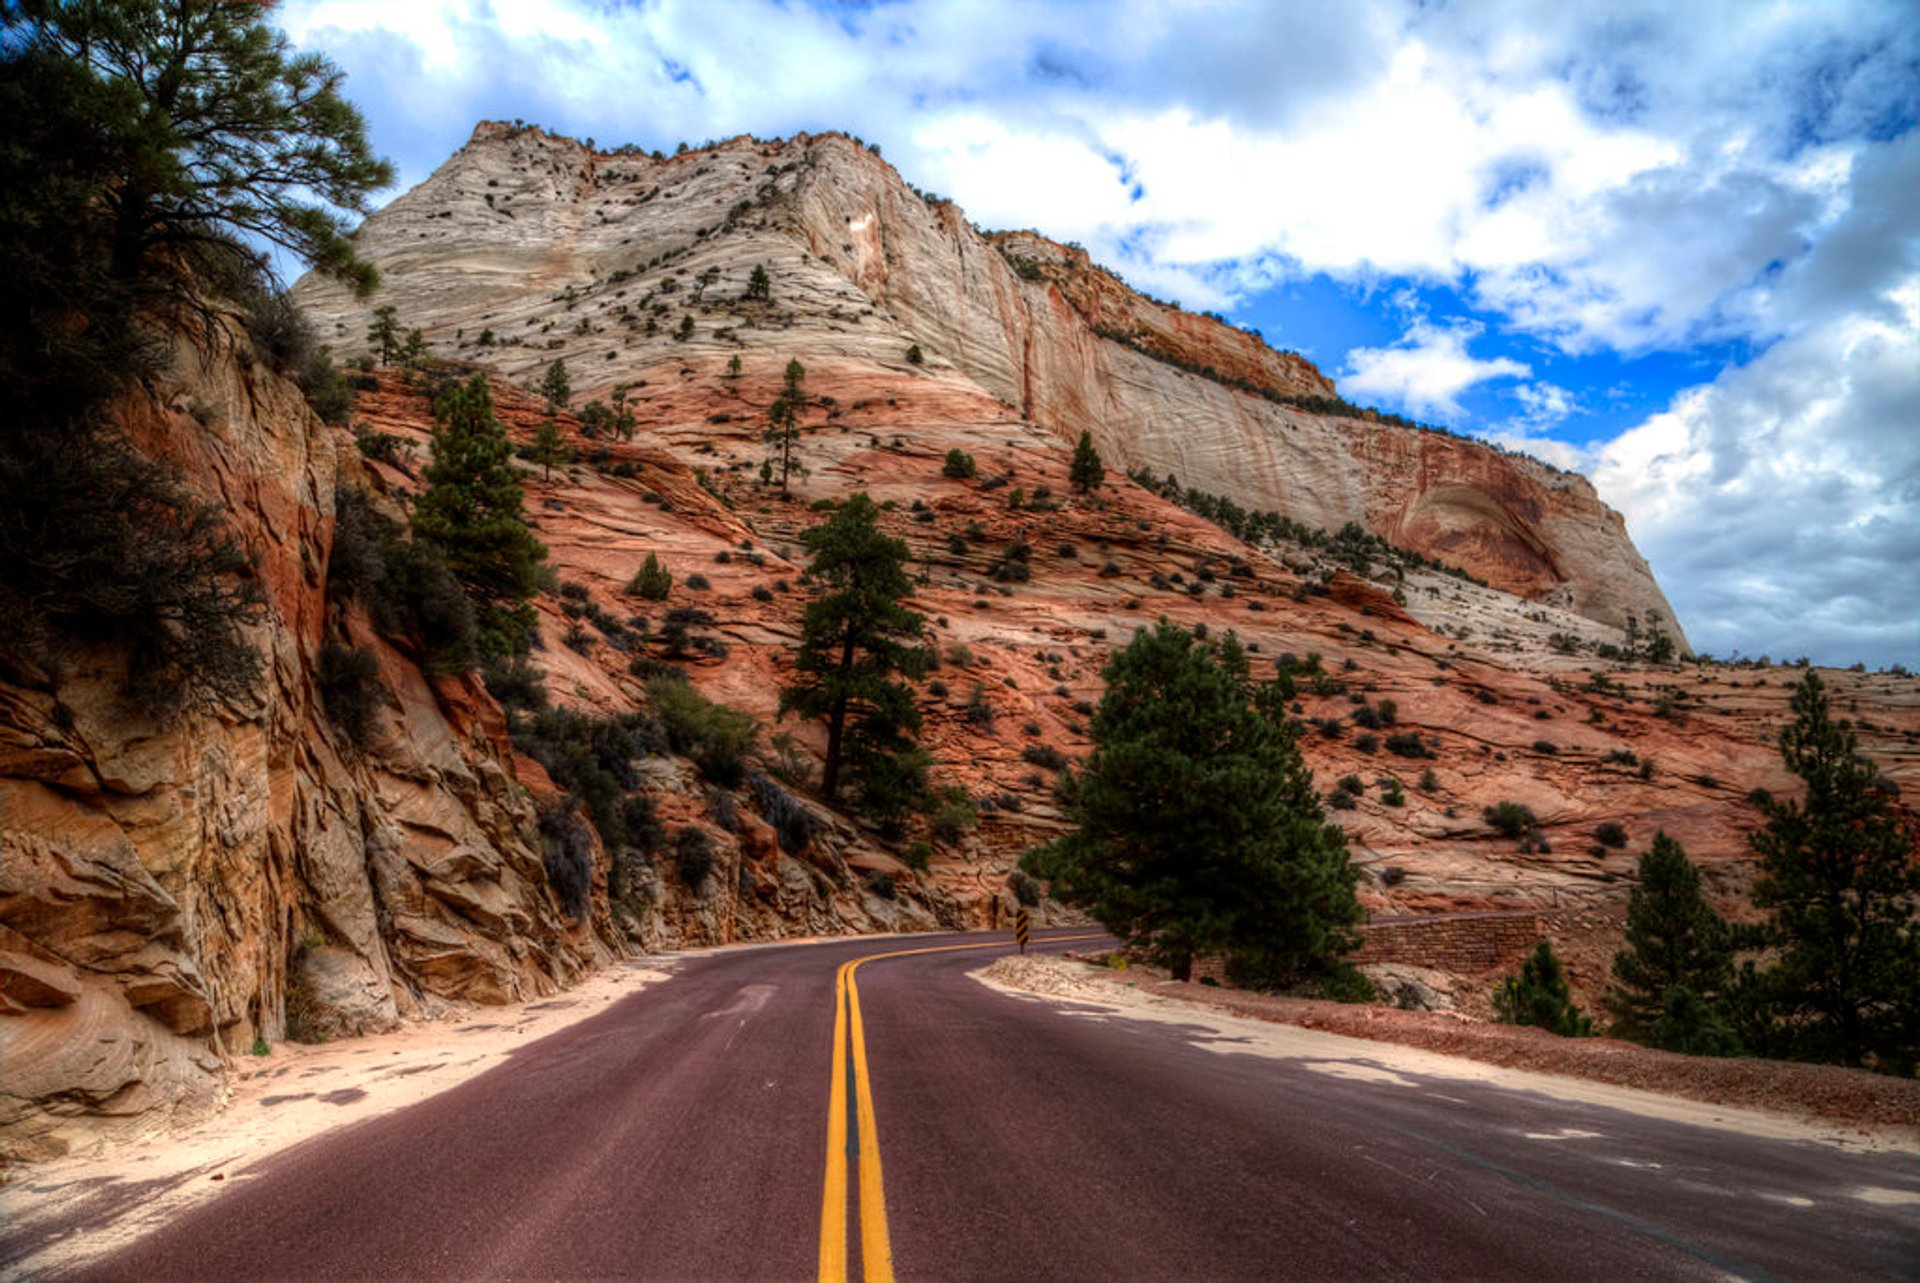 Zion-Mount Carmel Highway in Utah 2019 - Best Time